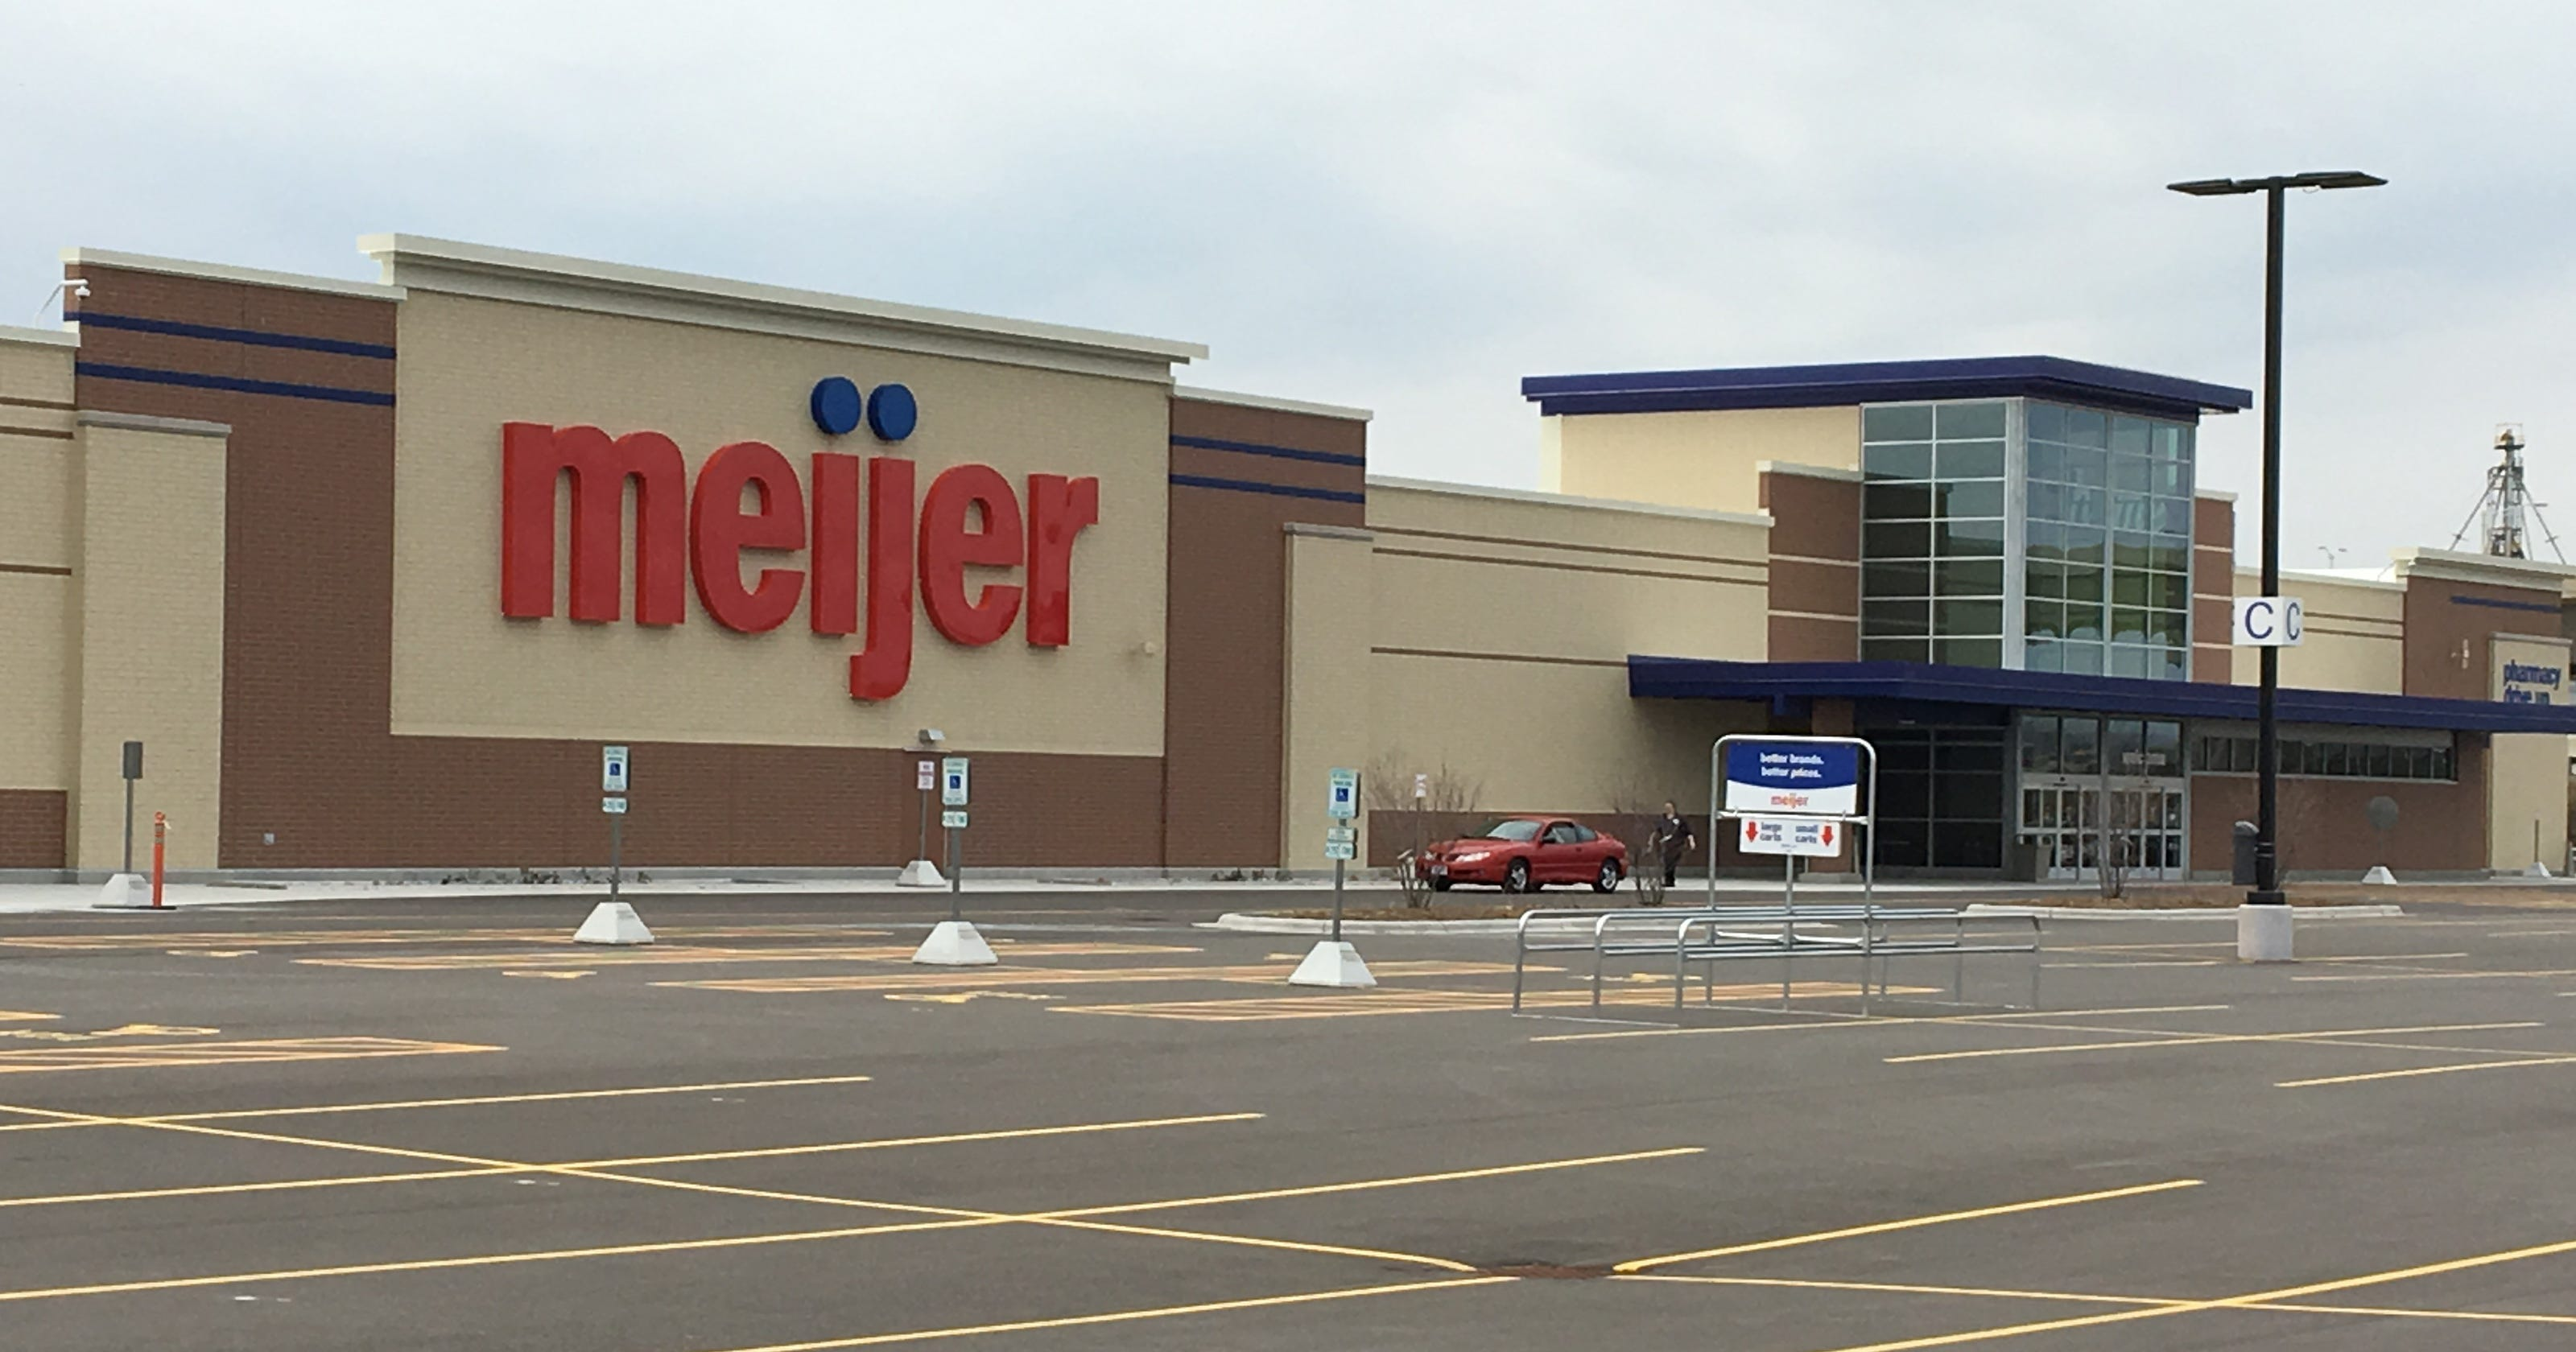 meijer - photo #27